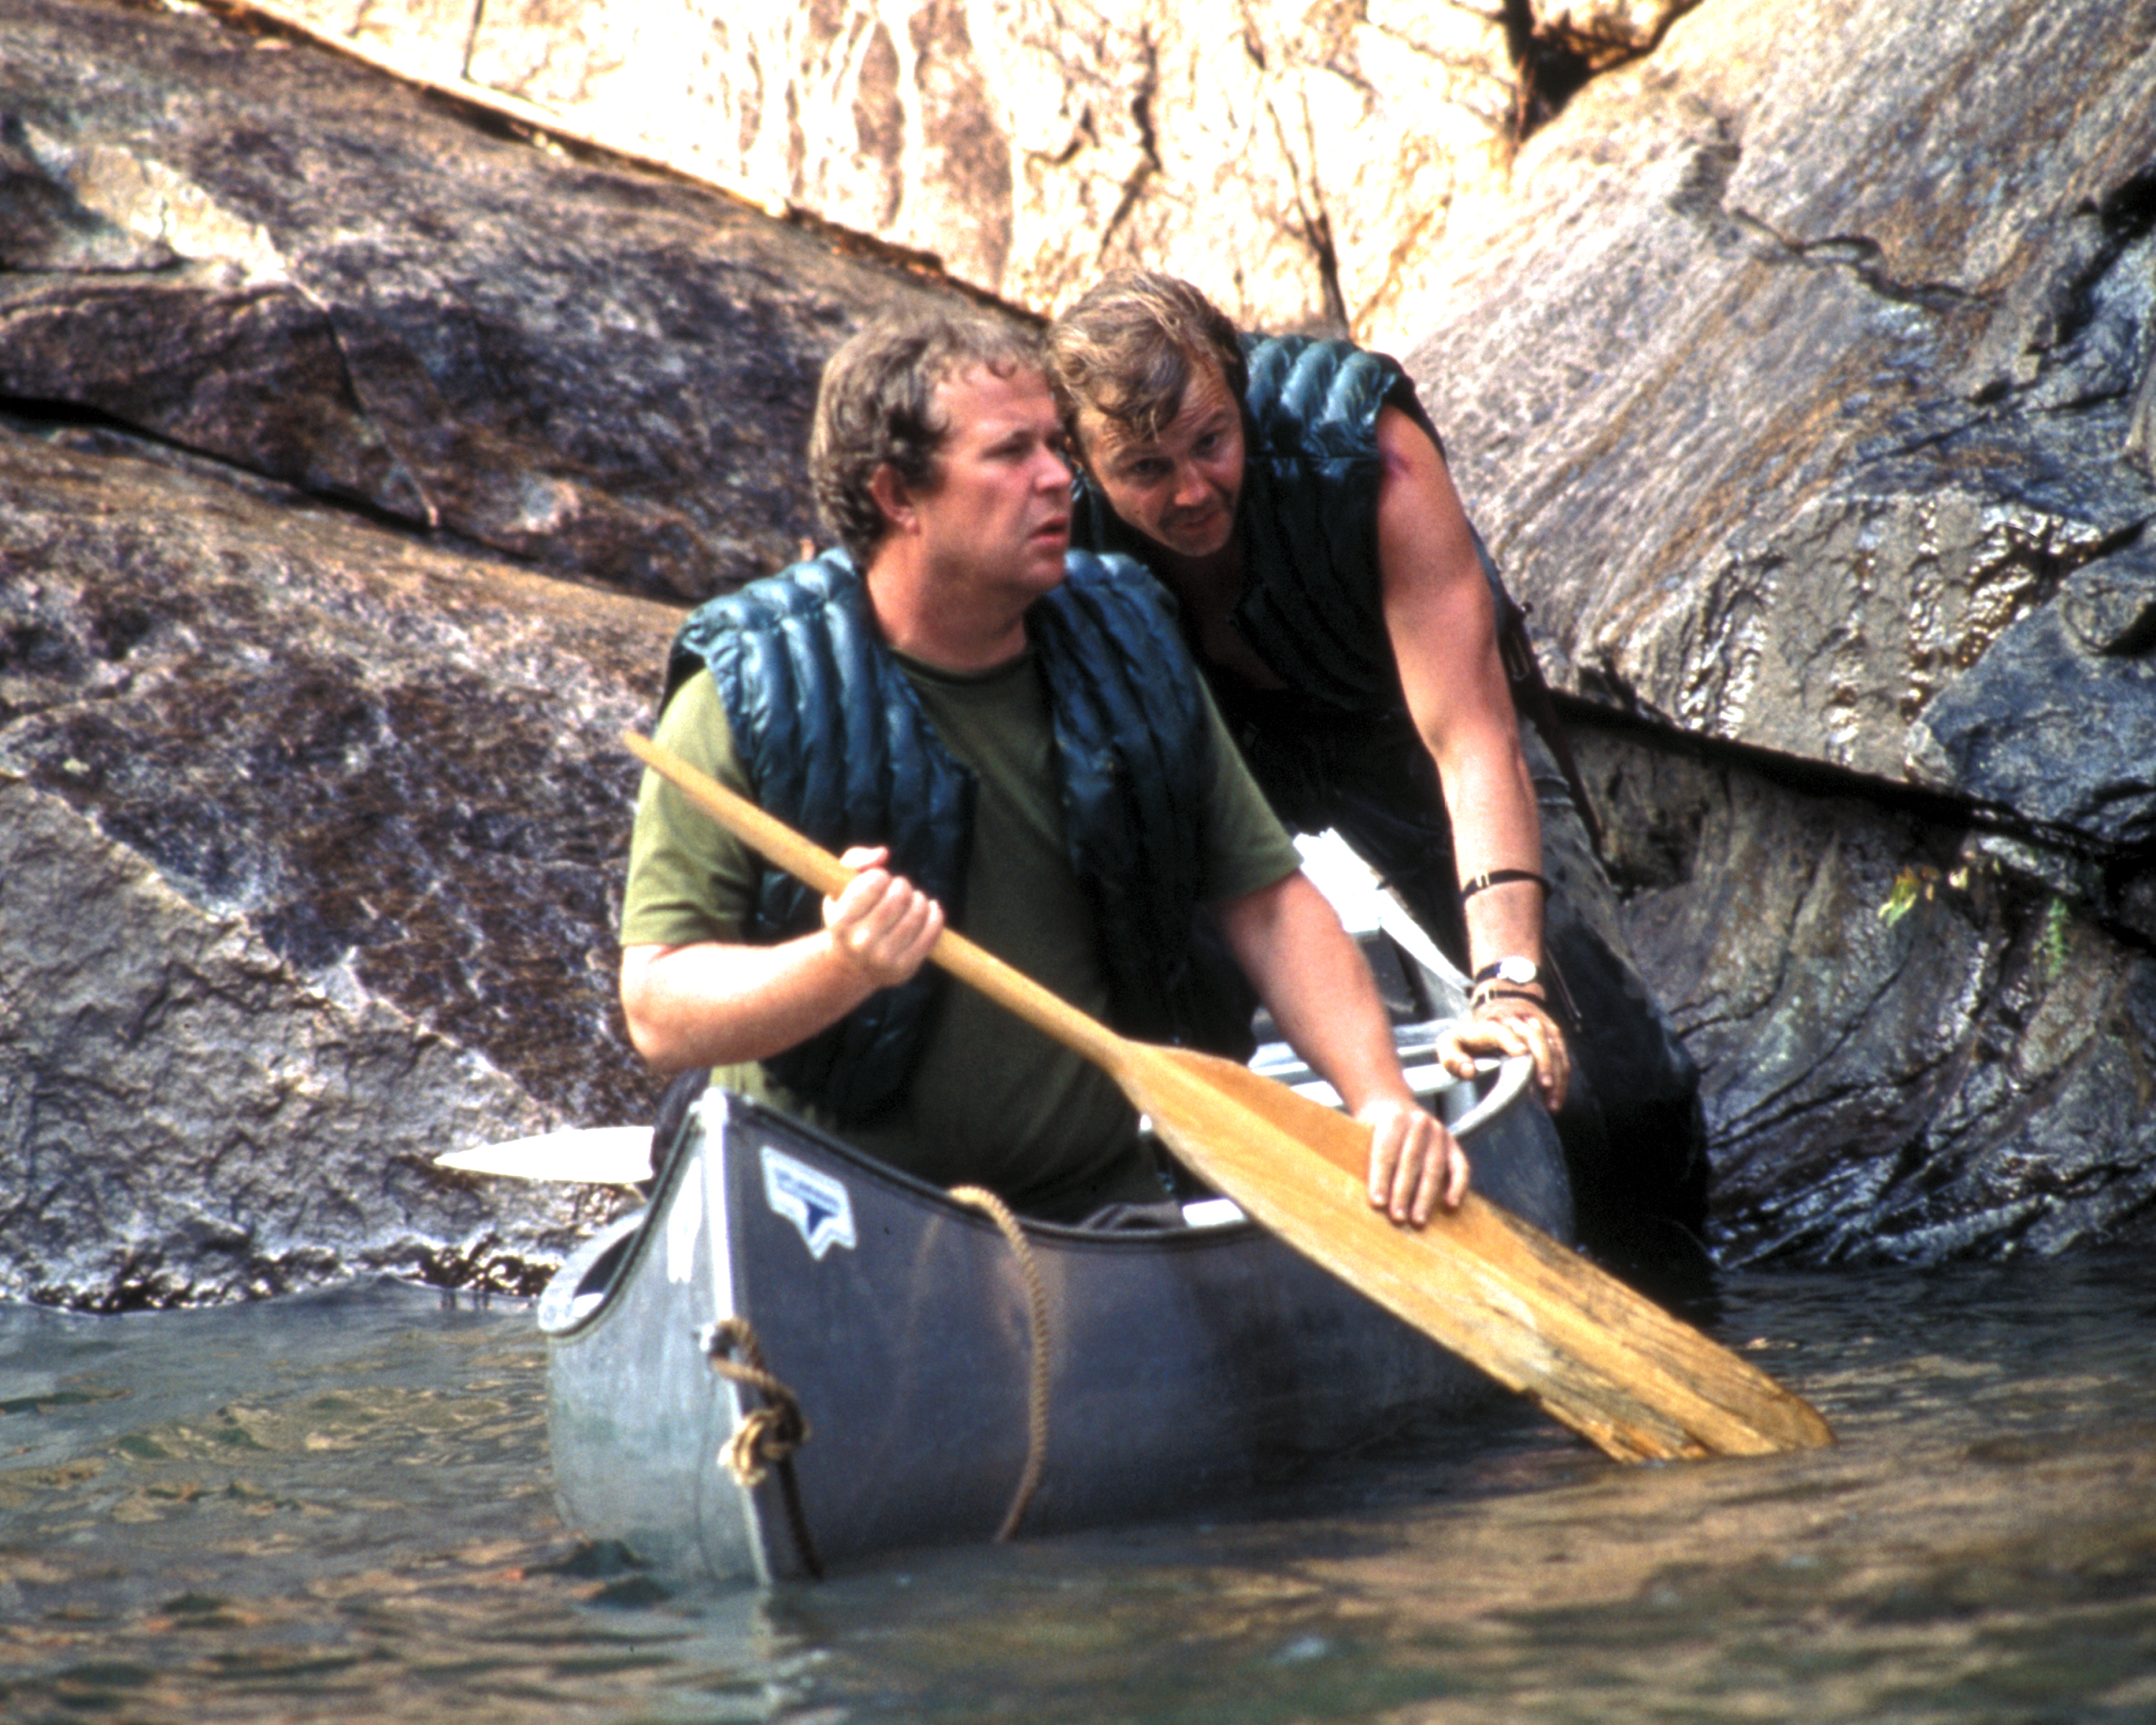 Jon Voight and Ned Beatty in Deliverance (1972)